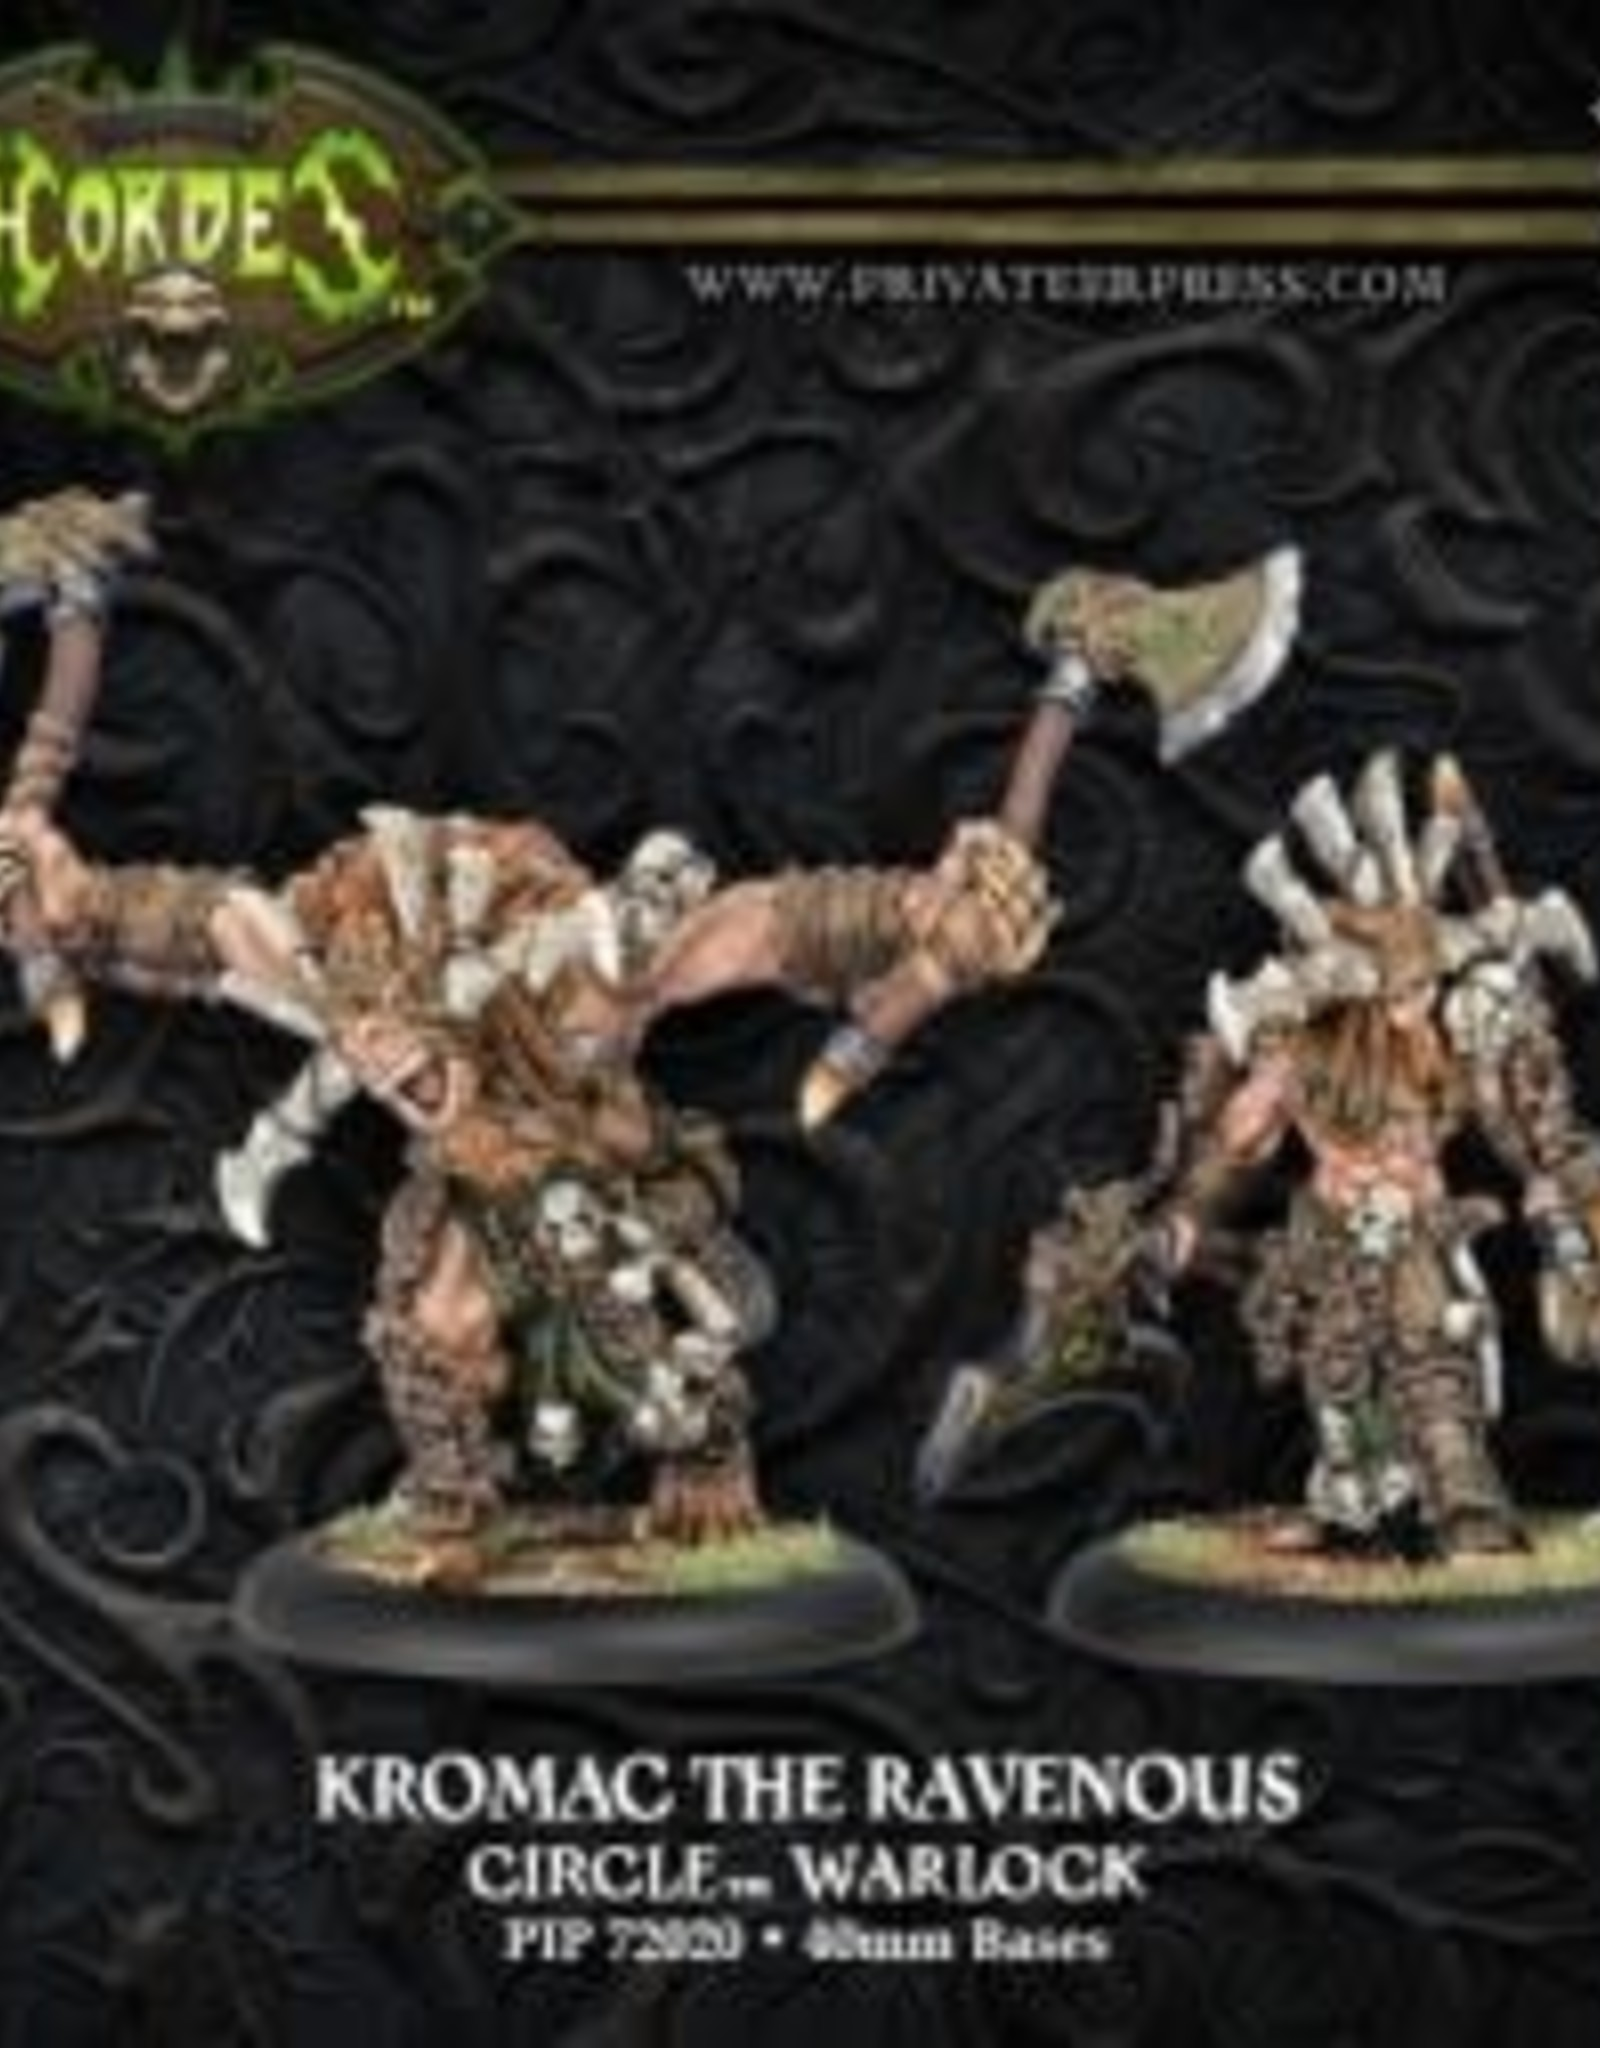 Hordes Circle - Kromac the Ravenous